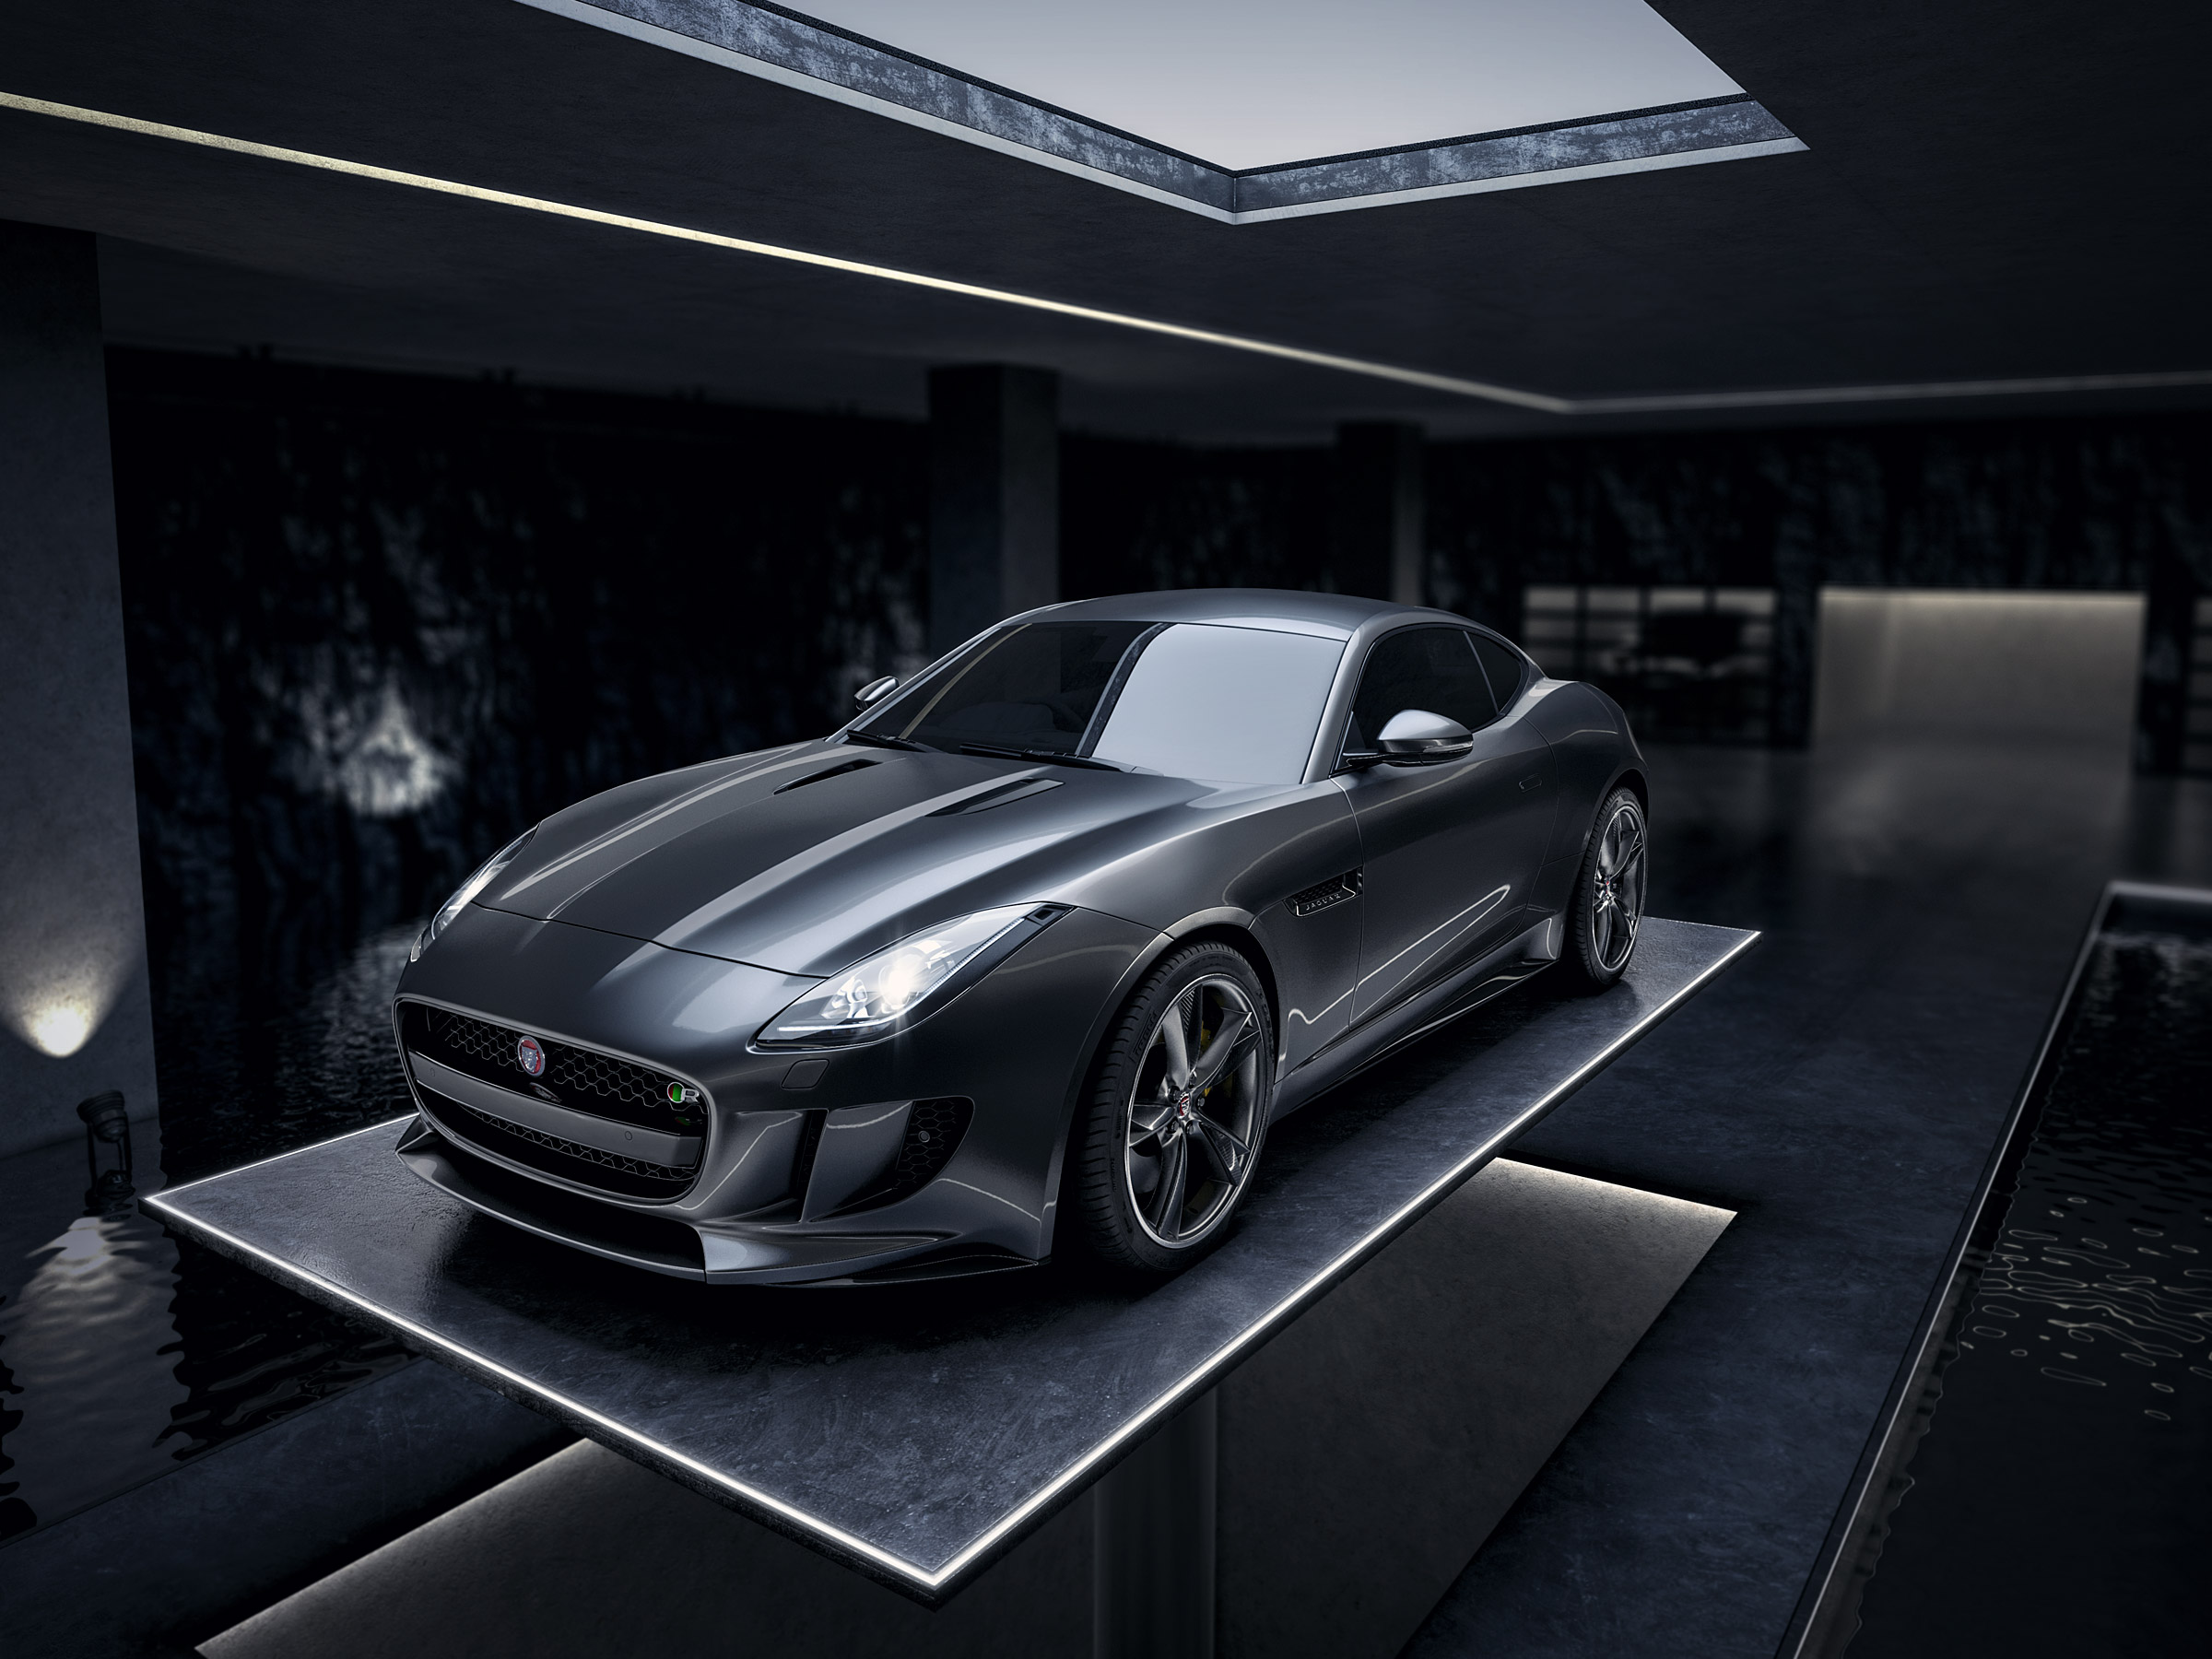 jaguar_ftype_f_type_tank_cgi_retouch_london_post_production_underground_lair_garage_34